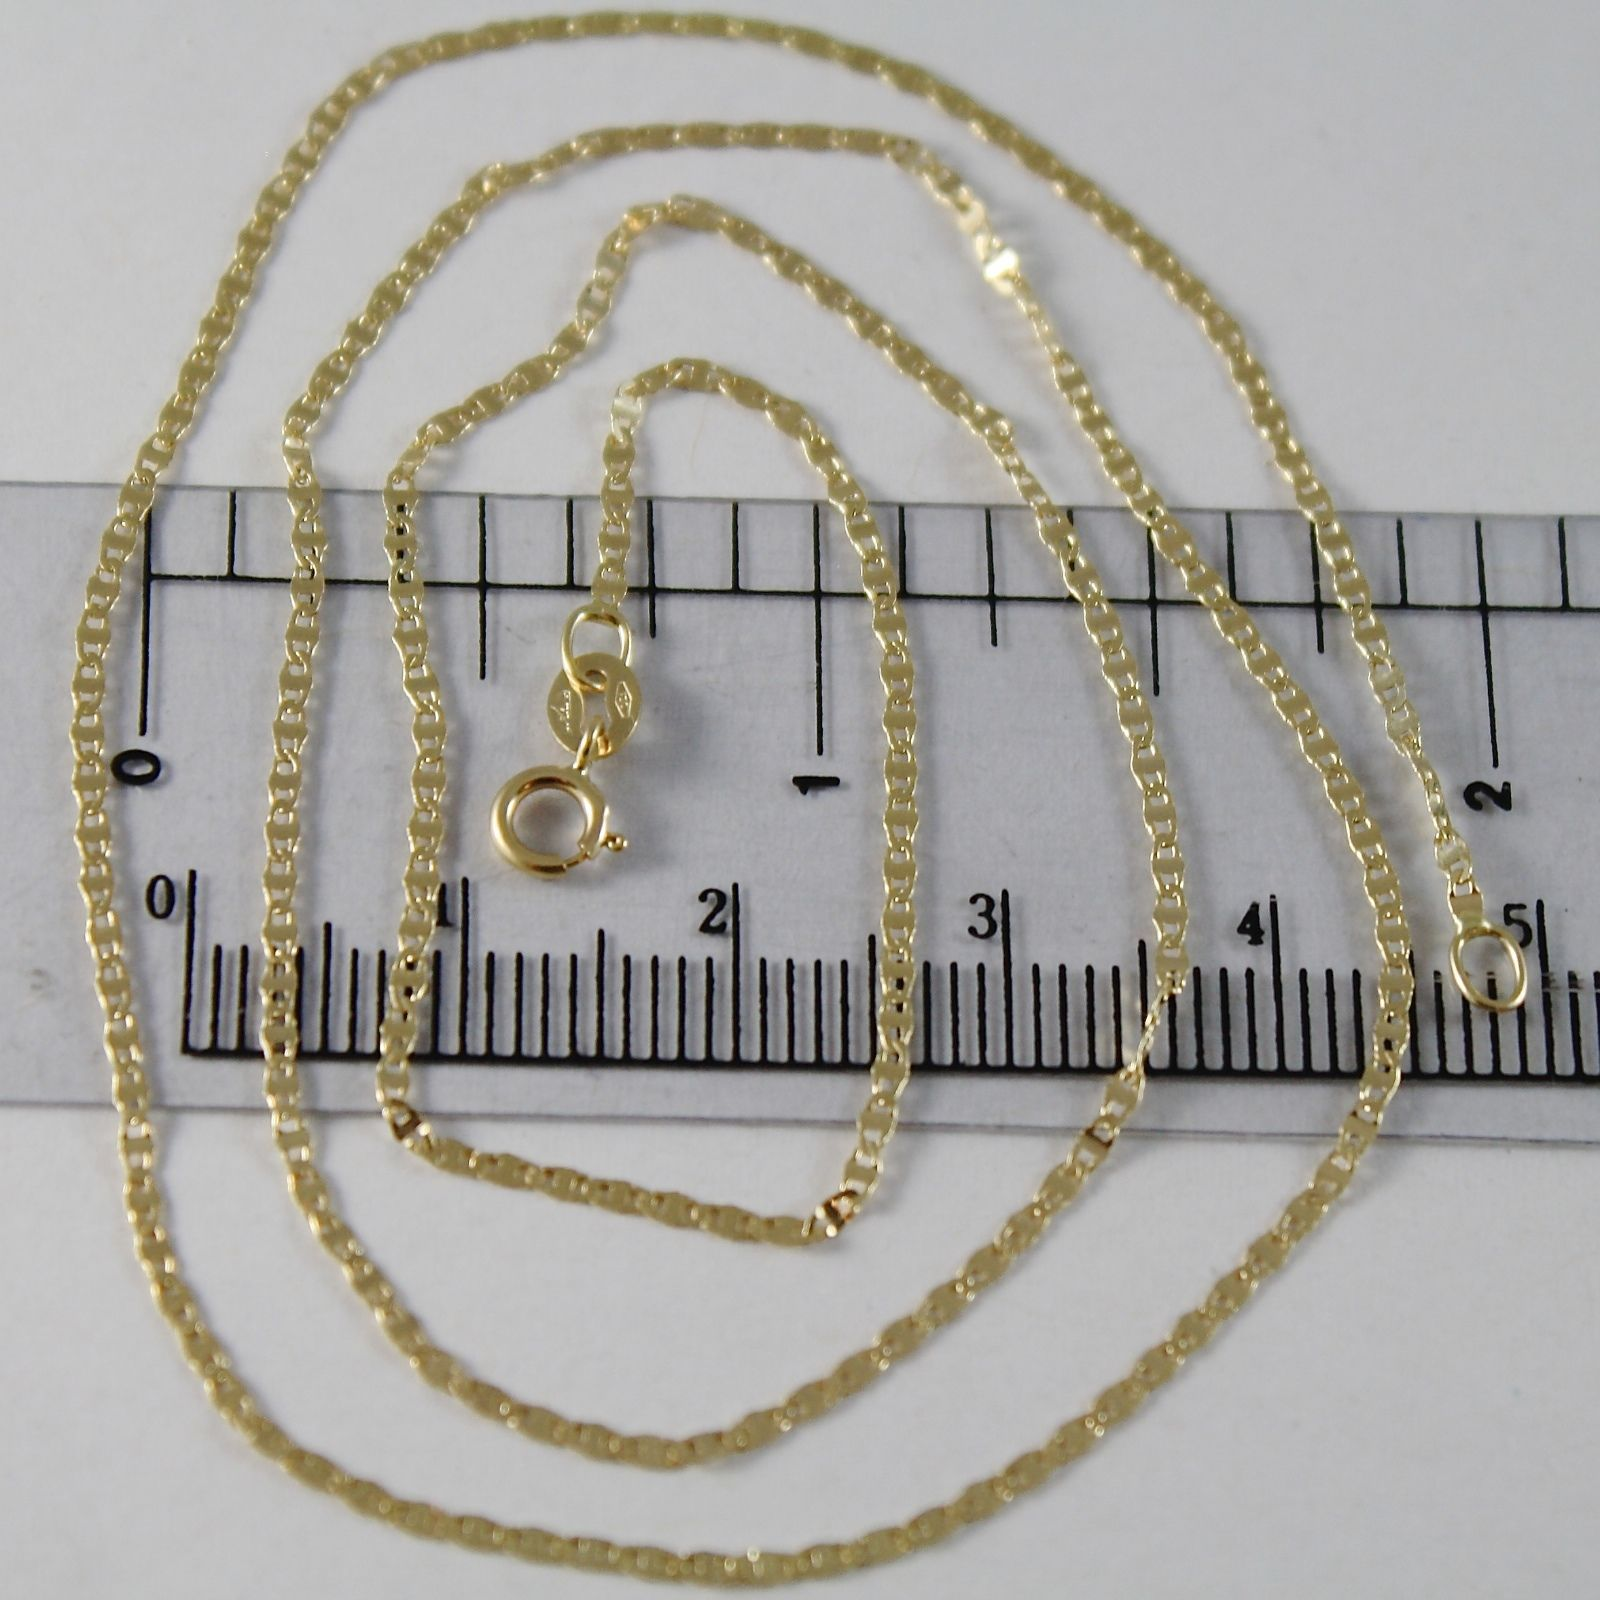 18K YELLOW GOLD CHAIN MINI OVAL FLAT LINK 1 MM WIDTH 15.75 INCHES MADE IN ITALY